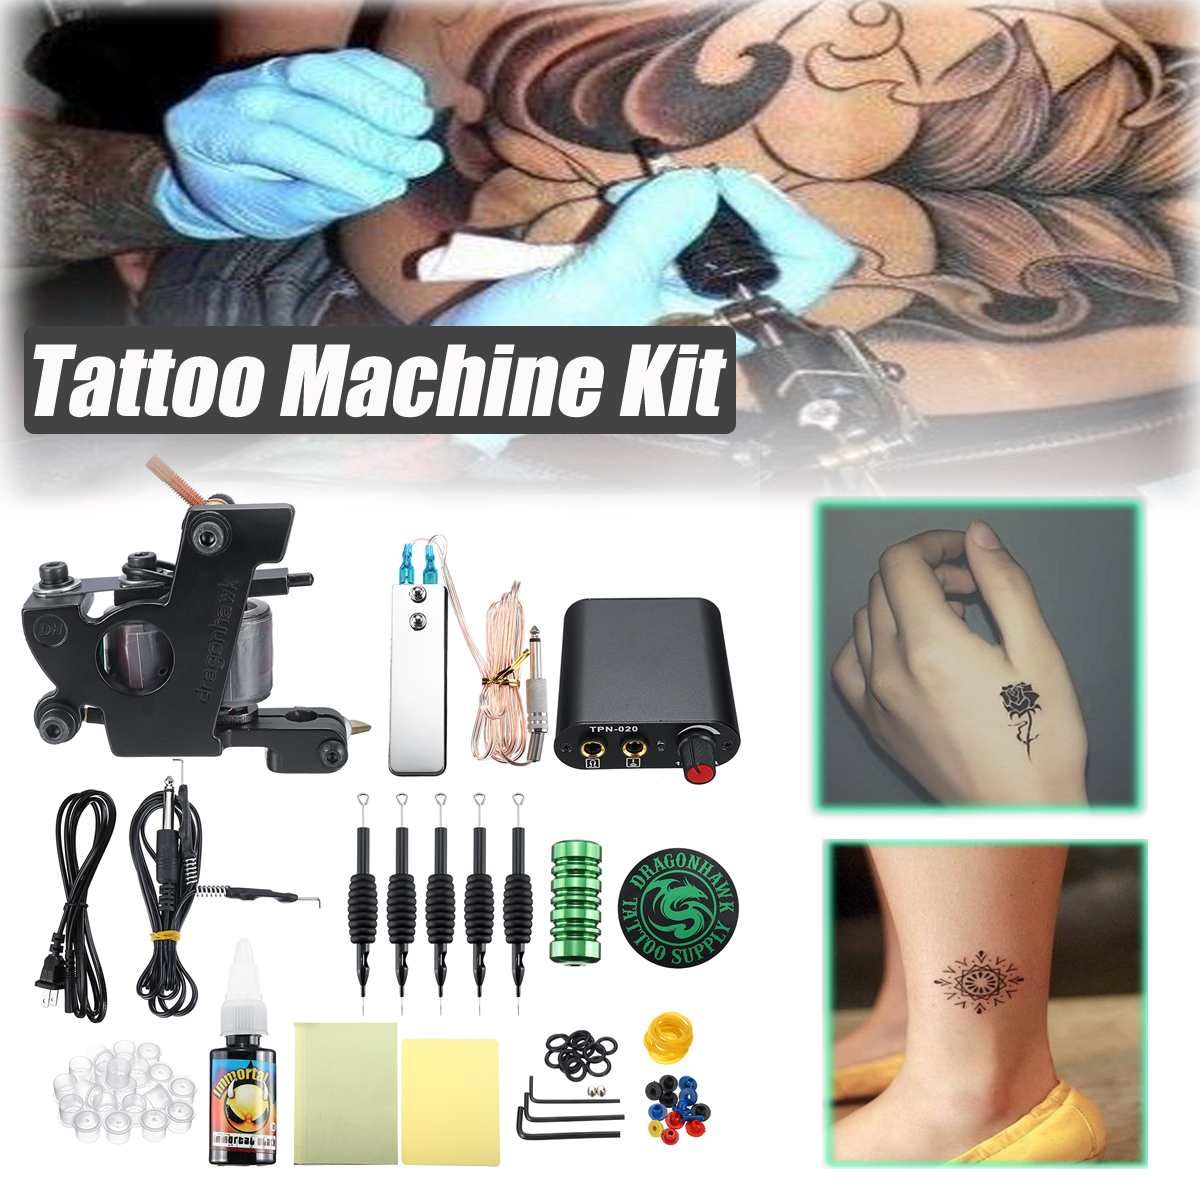 Beginner Tattoo Motor Machine Kit for Gun Ink Power Supply 5 Needle Tip Complete SetBeginner Tattoo Motor Machine Kit for Gun Ink Power Supply 5 Needle Tip Complete Set